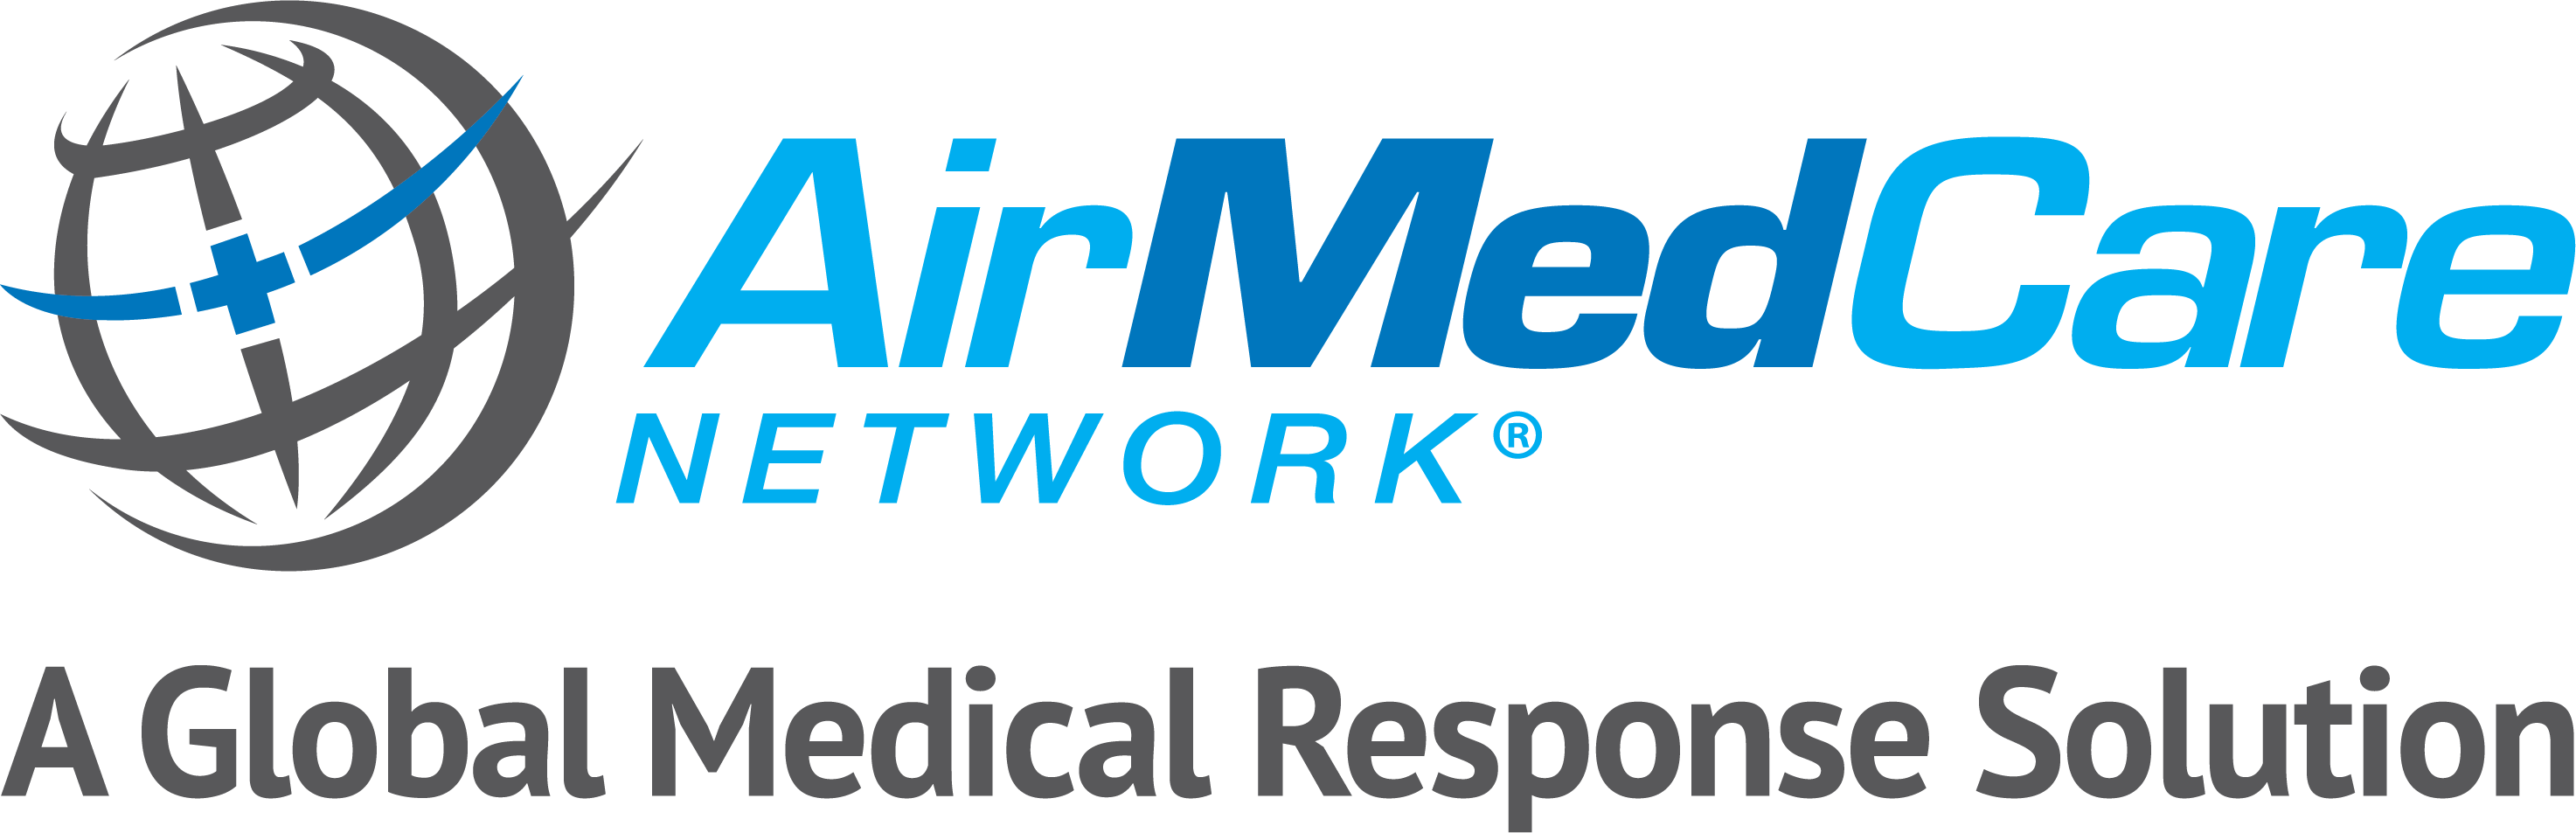 Air Evac - AirMedCare Network